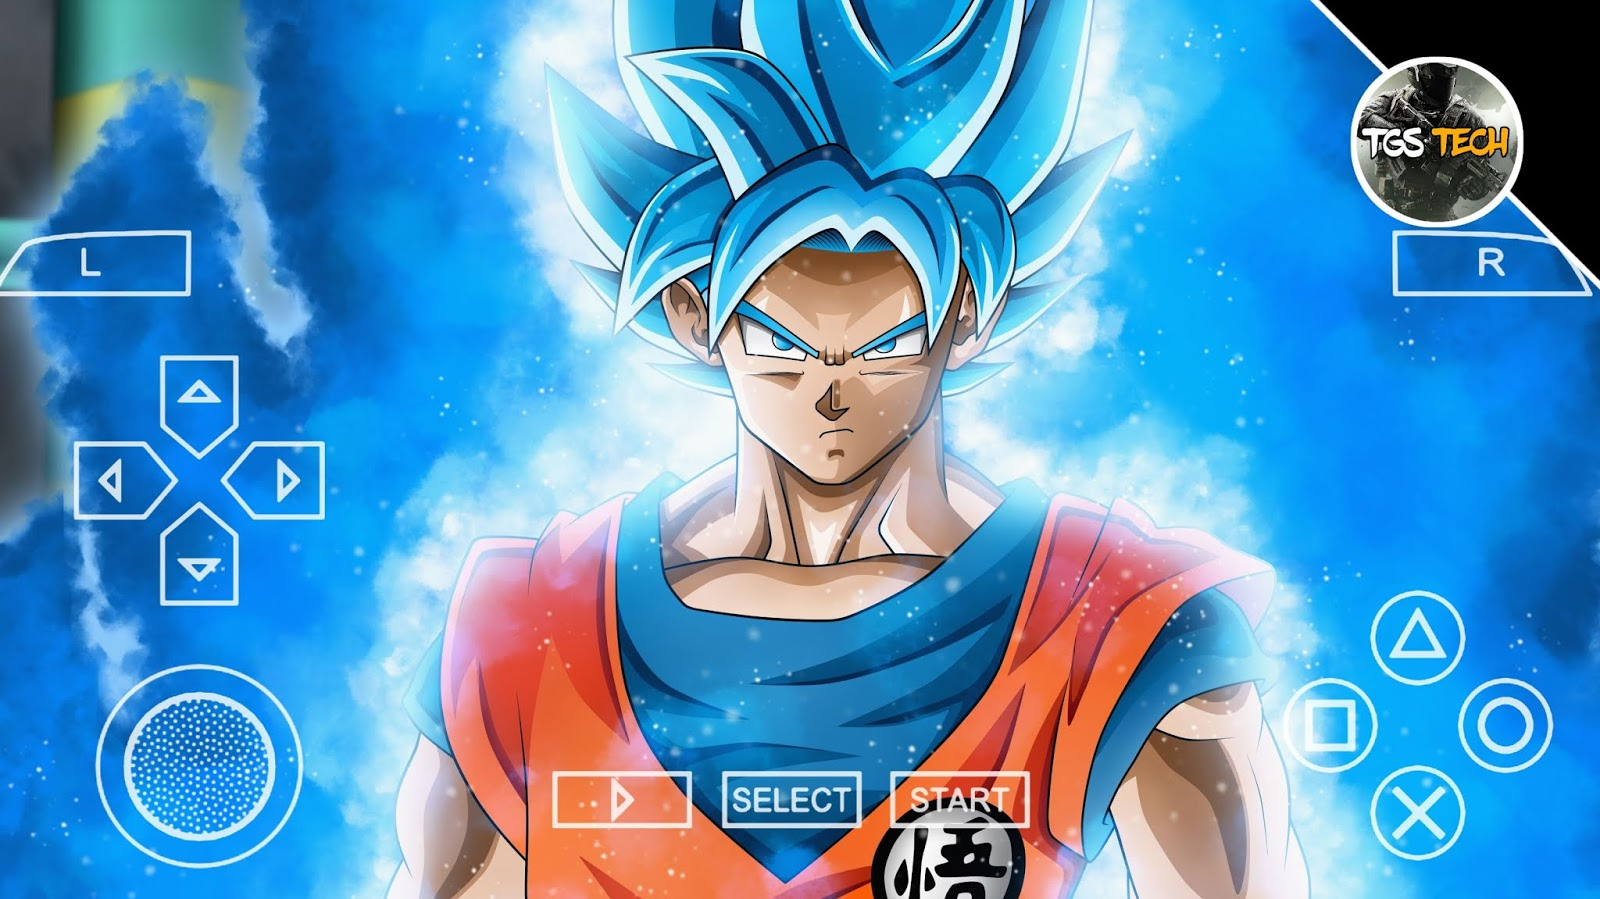 How to download Dragon ball z shin budokai another road in